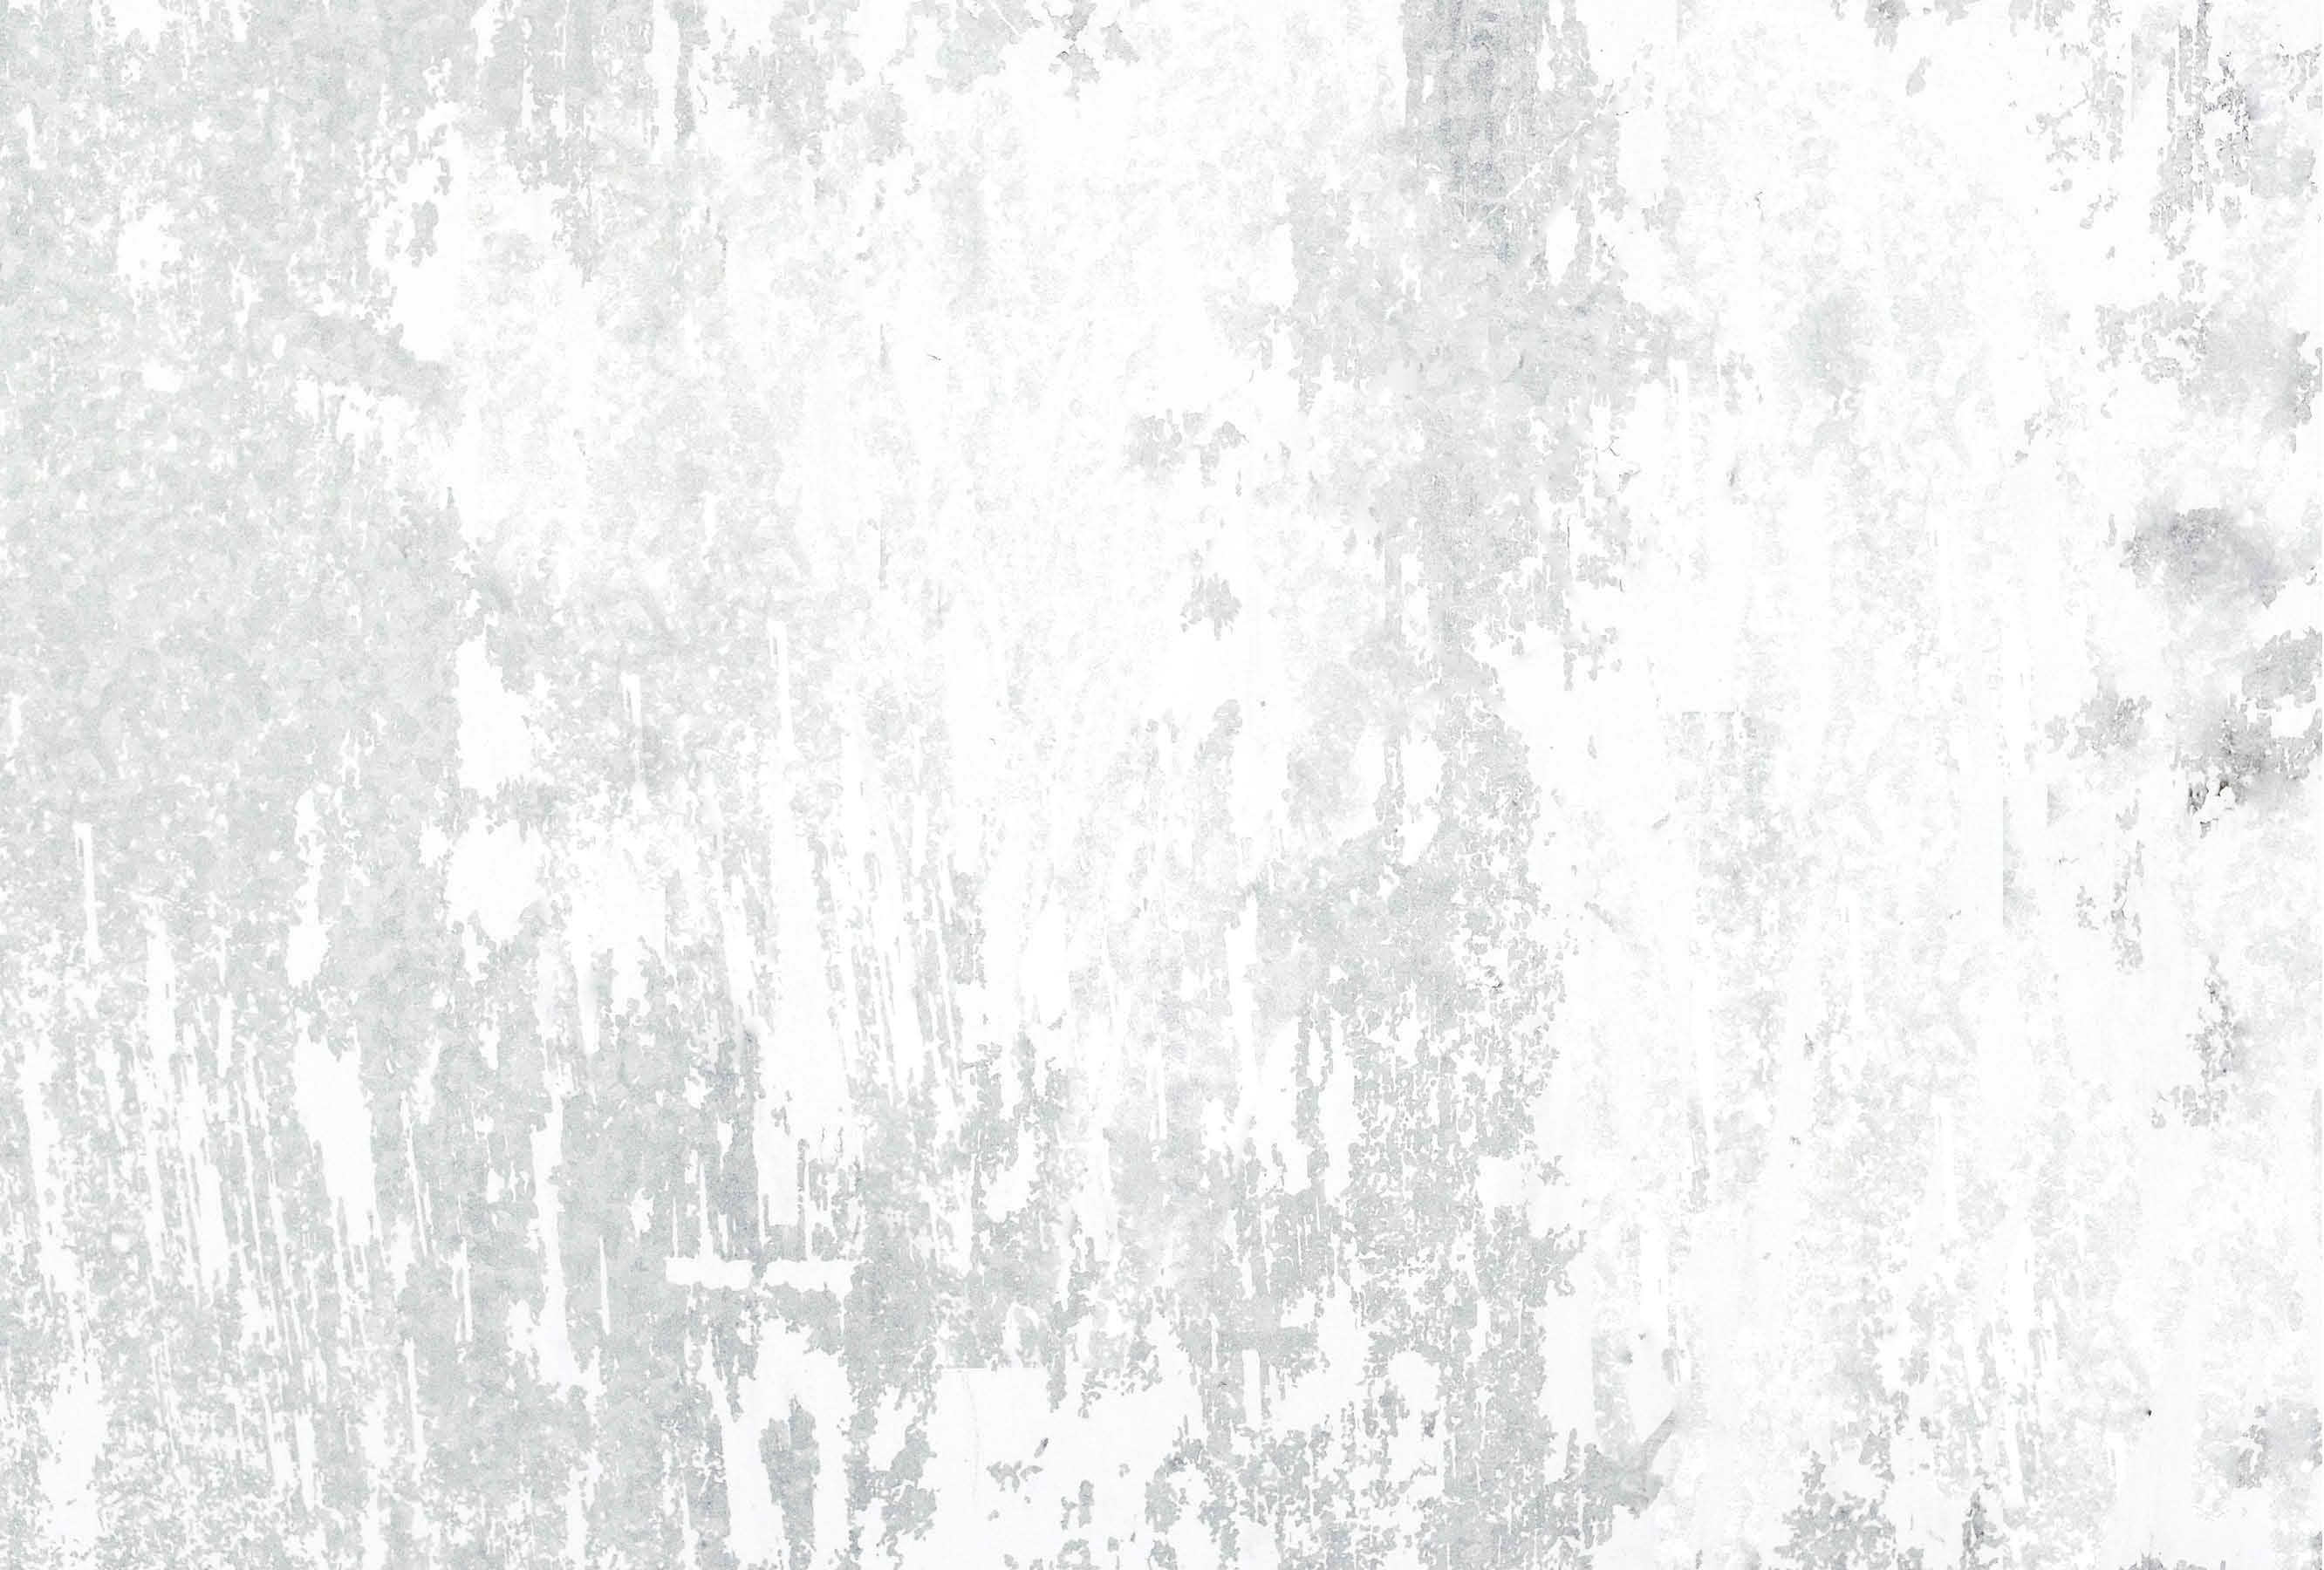 Distressed White Photography Backdrop